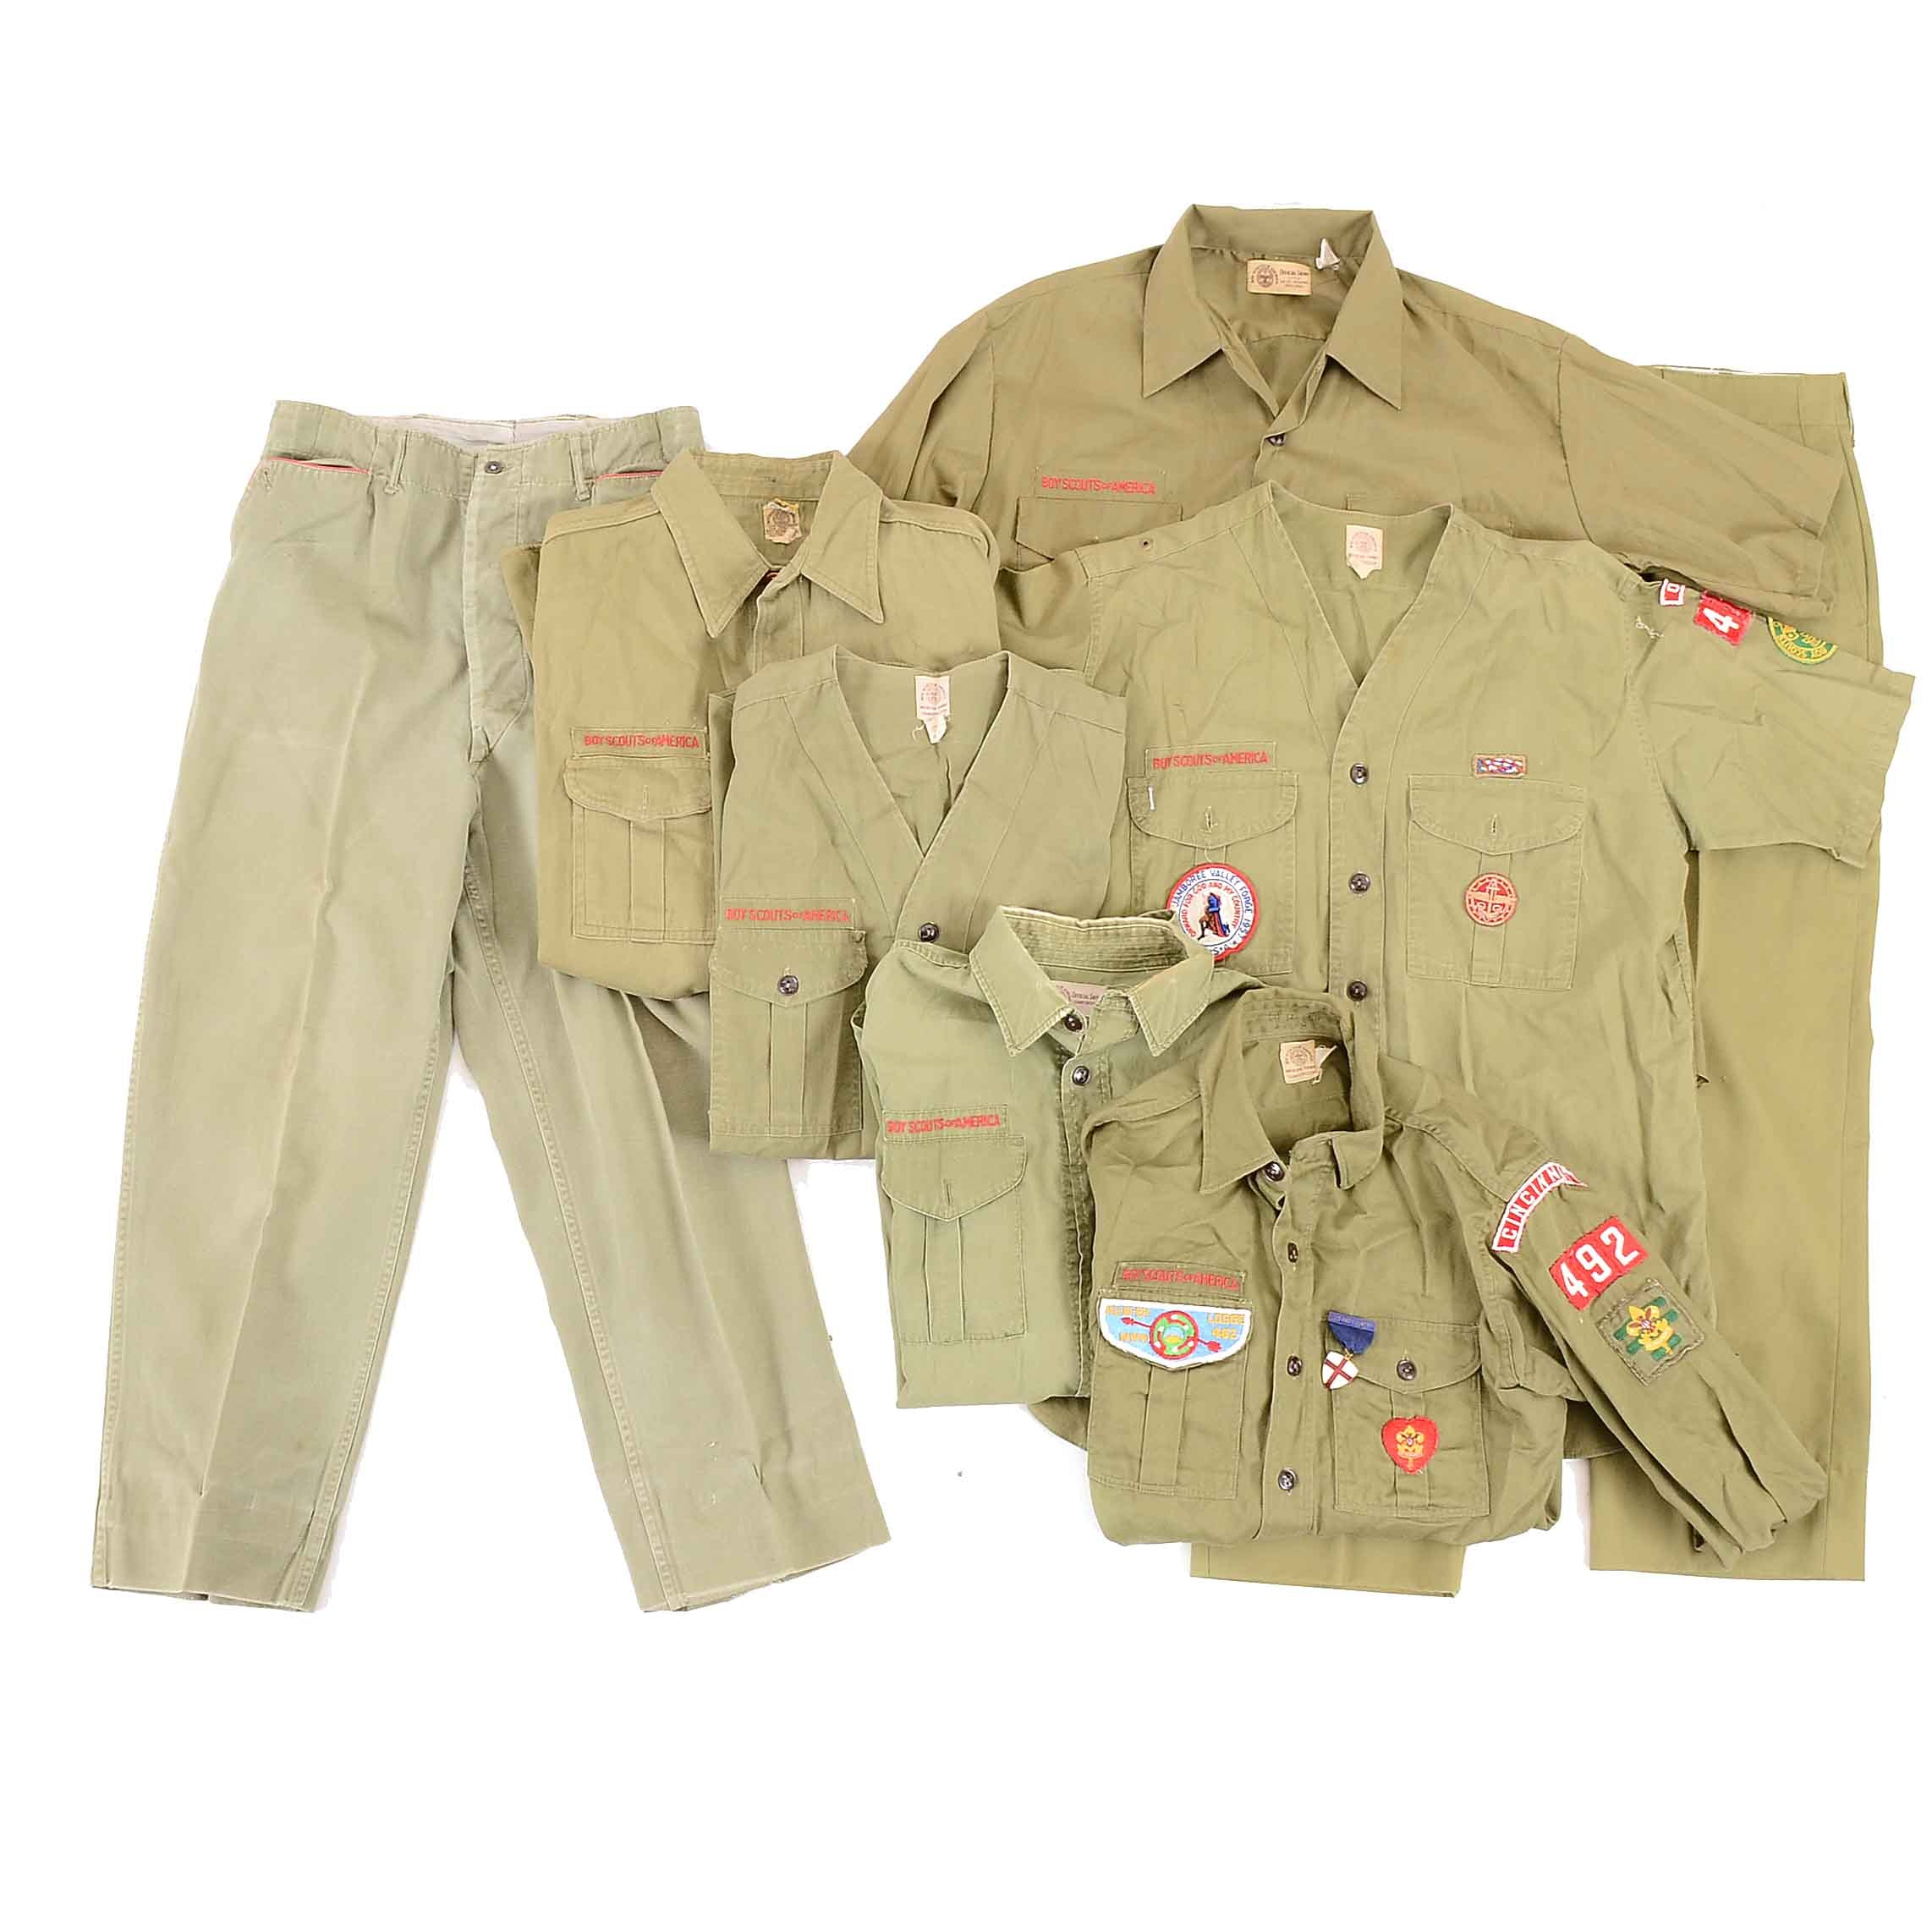 Collection of Vintage Boy Scout Uniform Parts